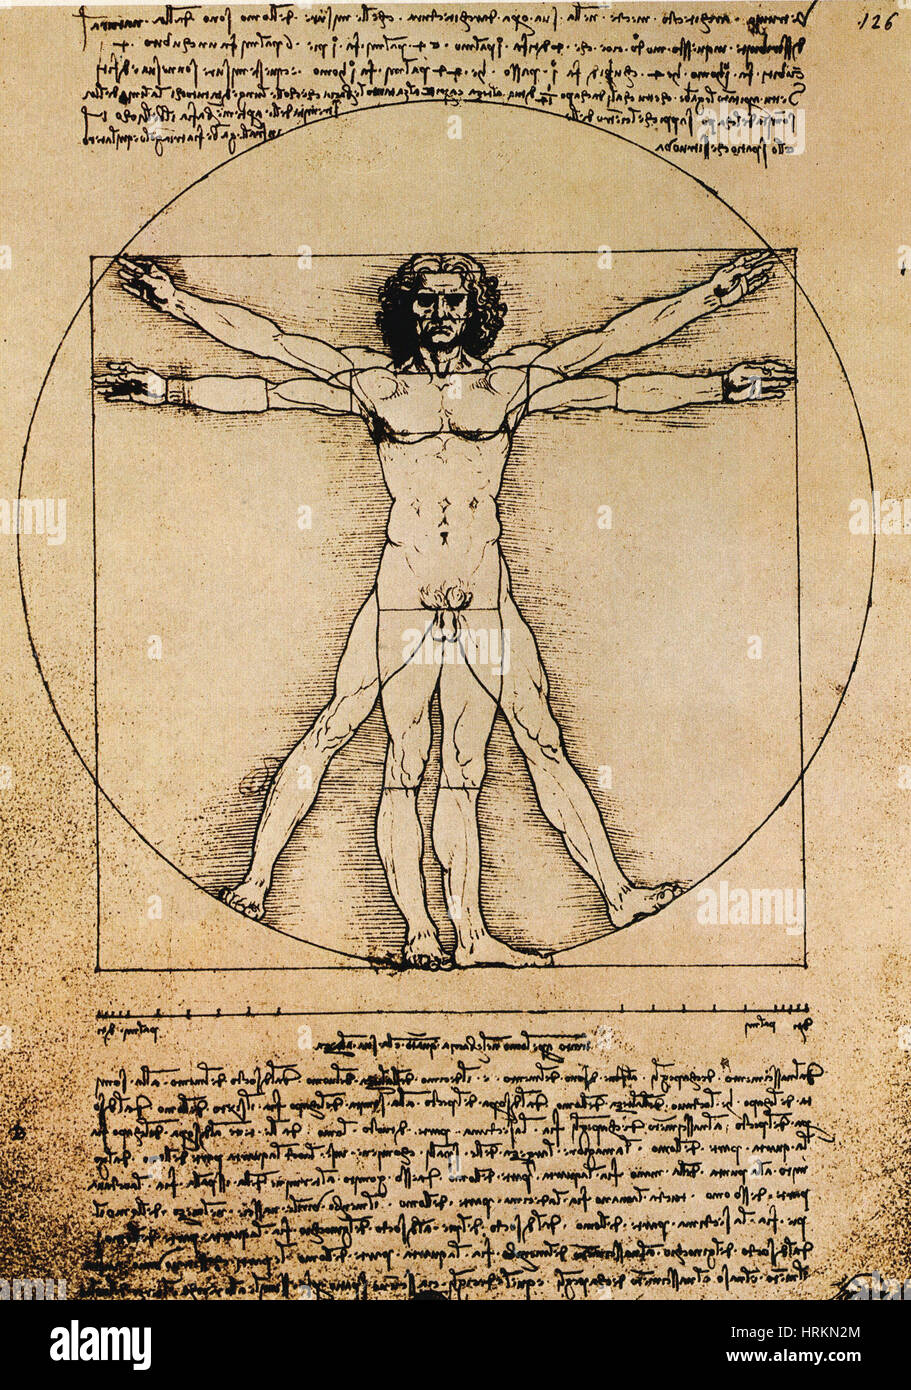 Da Vinci Rule of Proportions - Stock Image